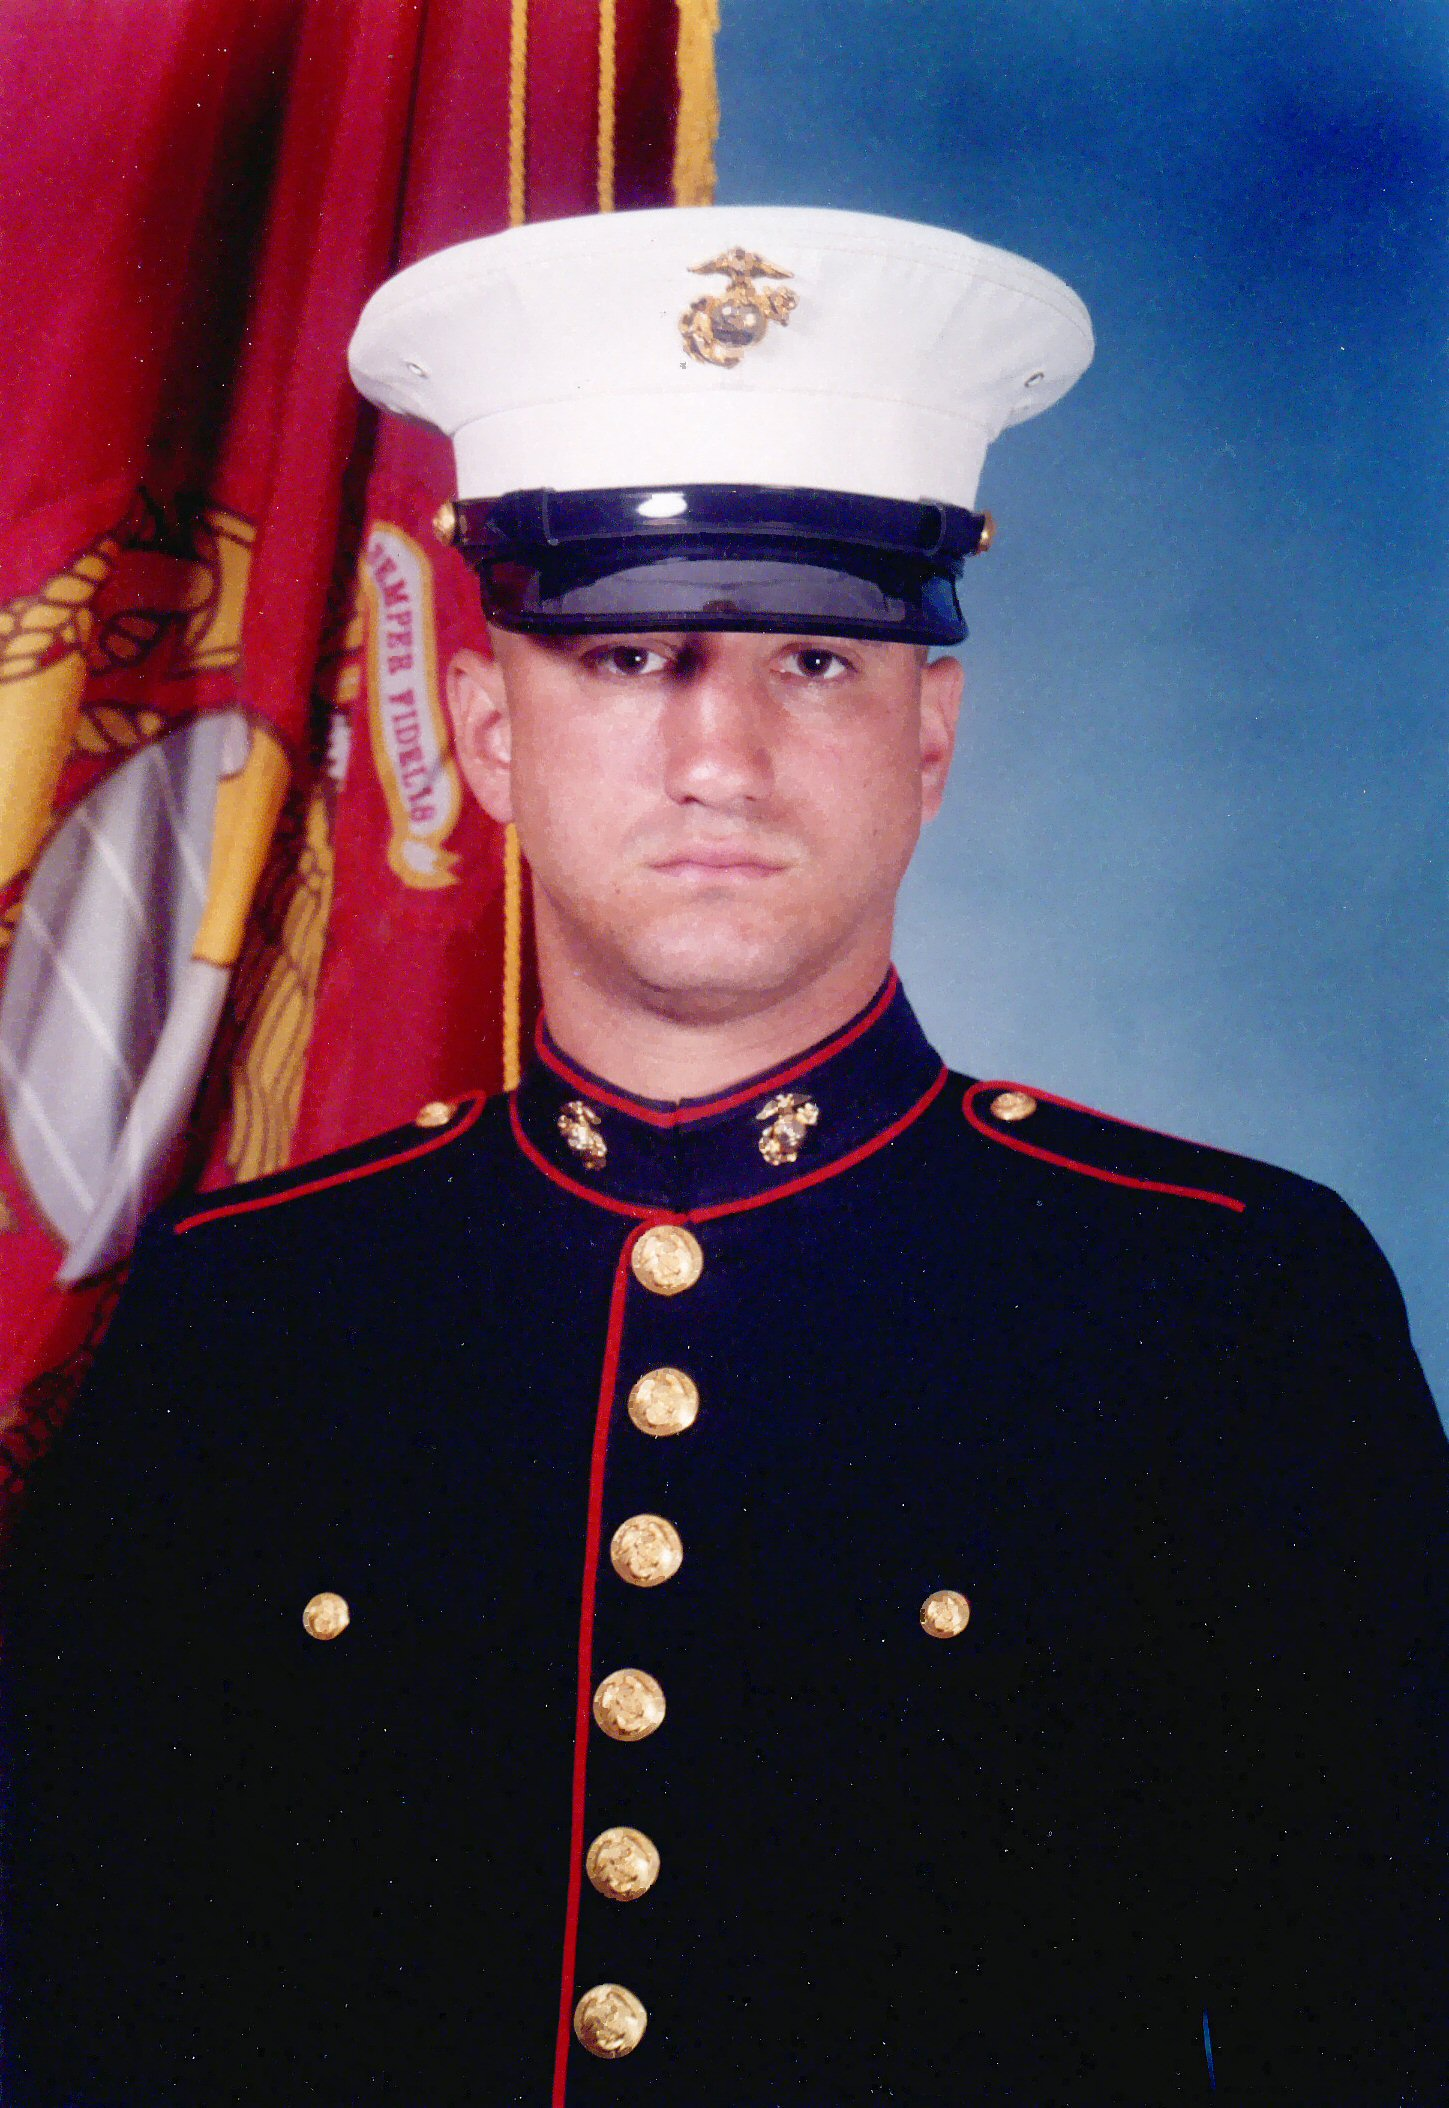 Lance Corporal Eric A. Palmisano